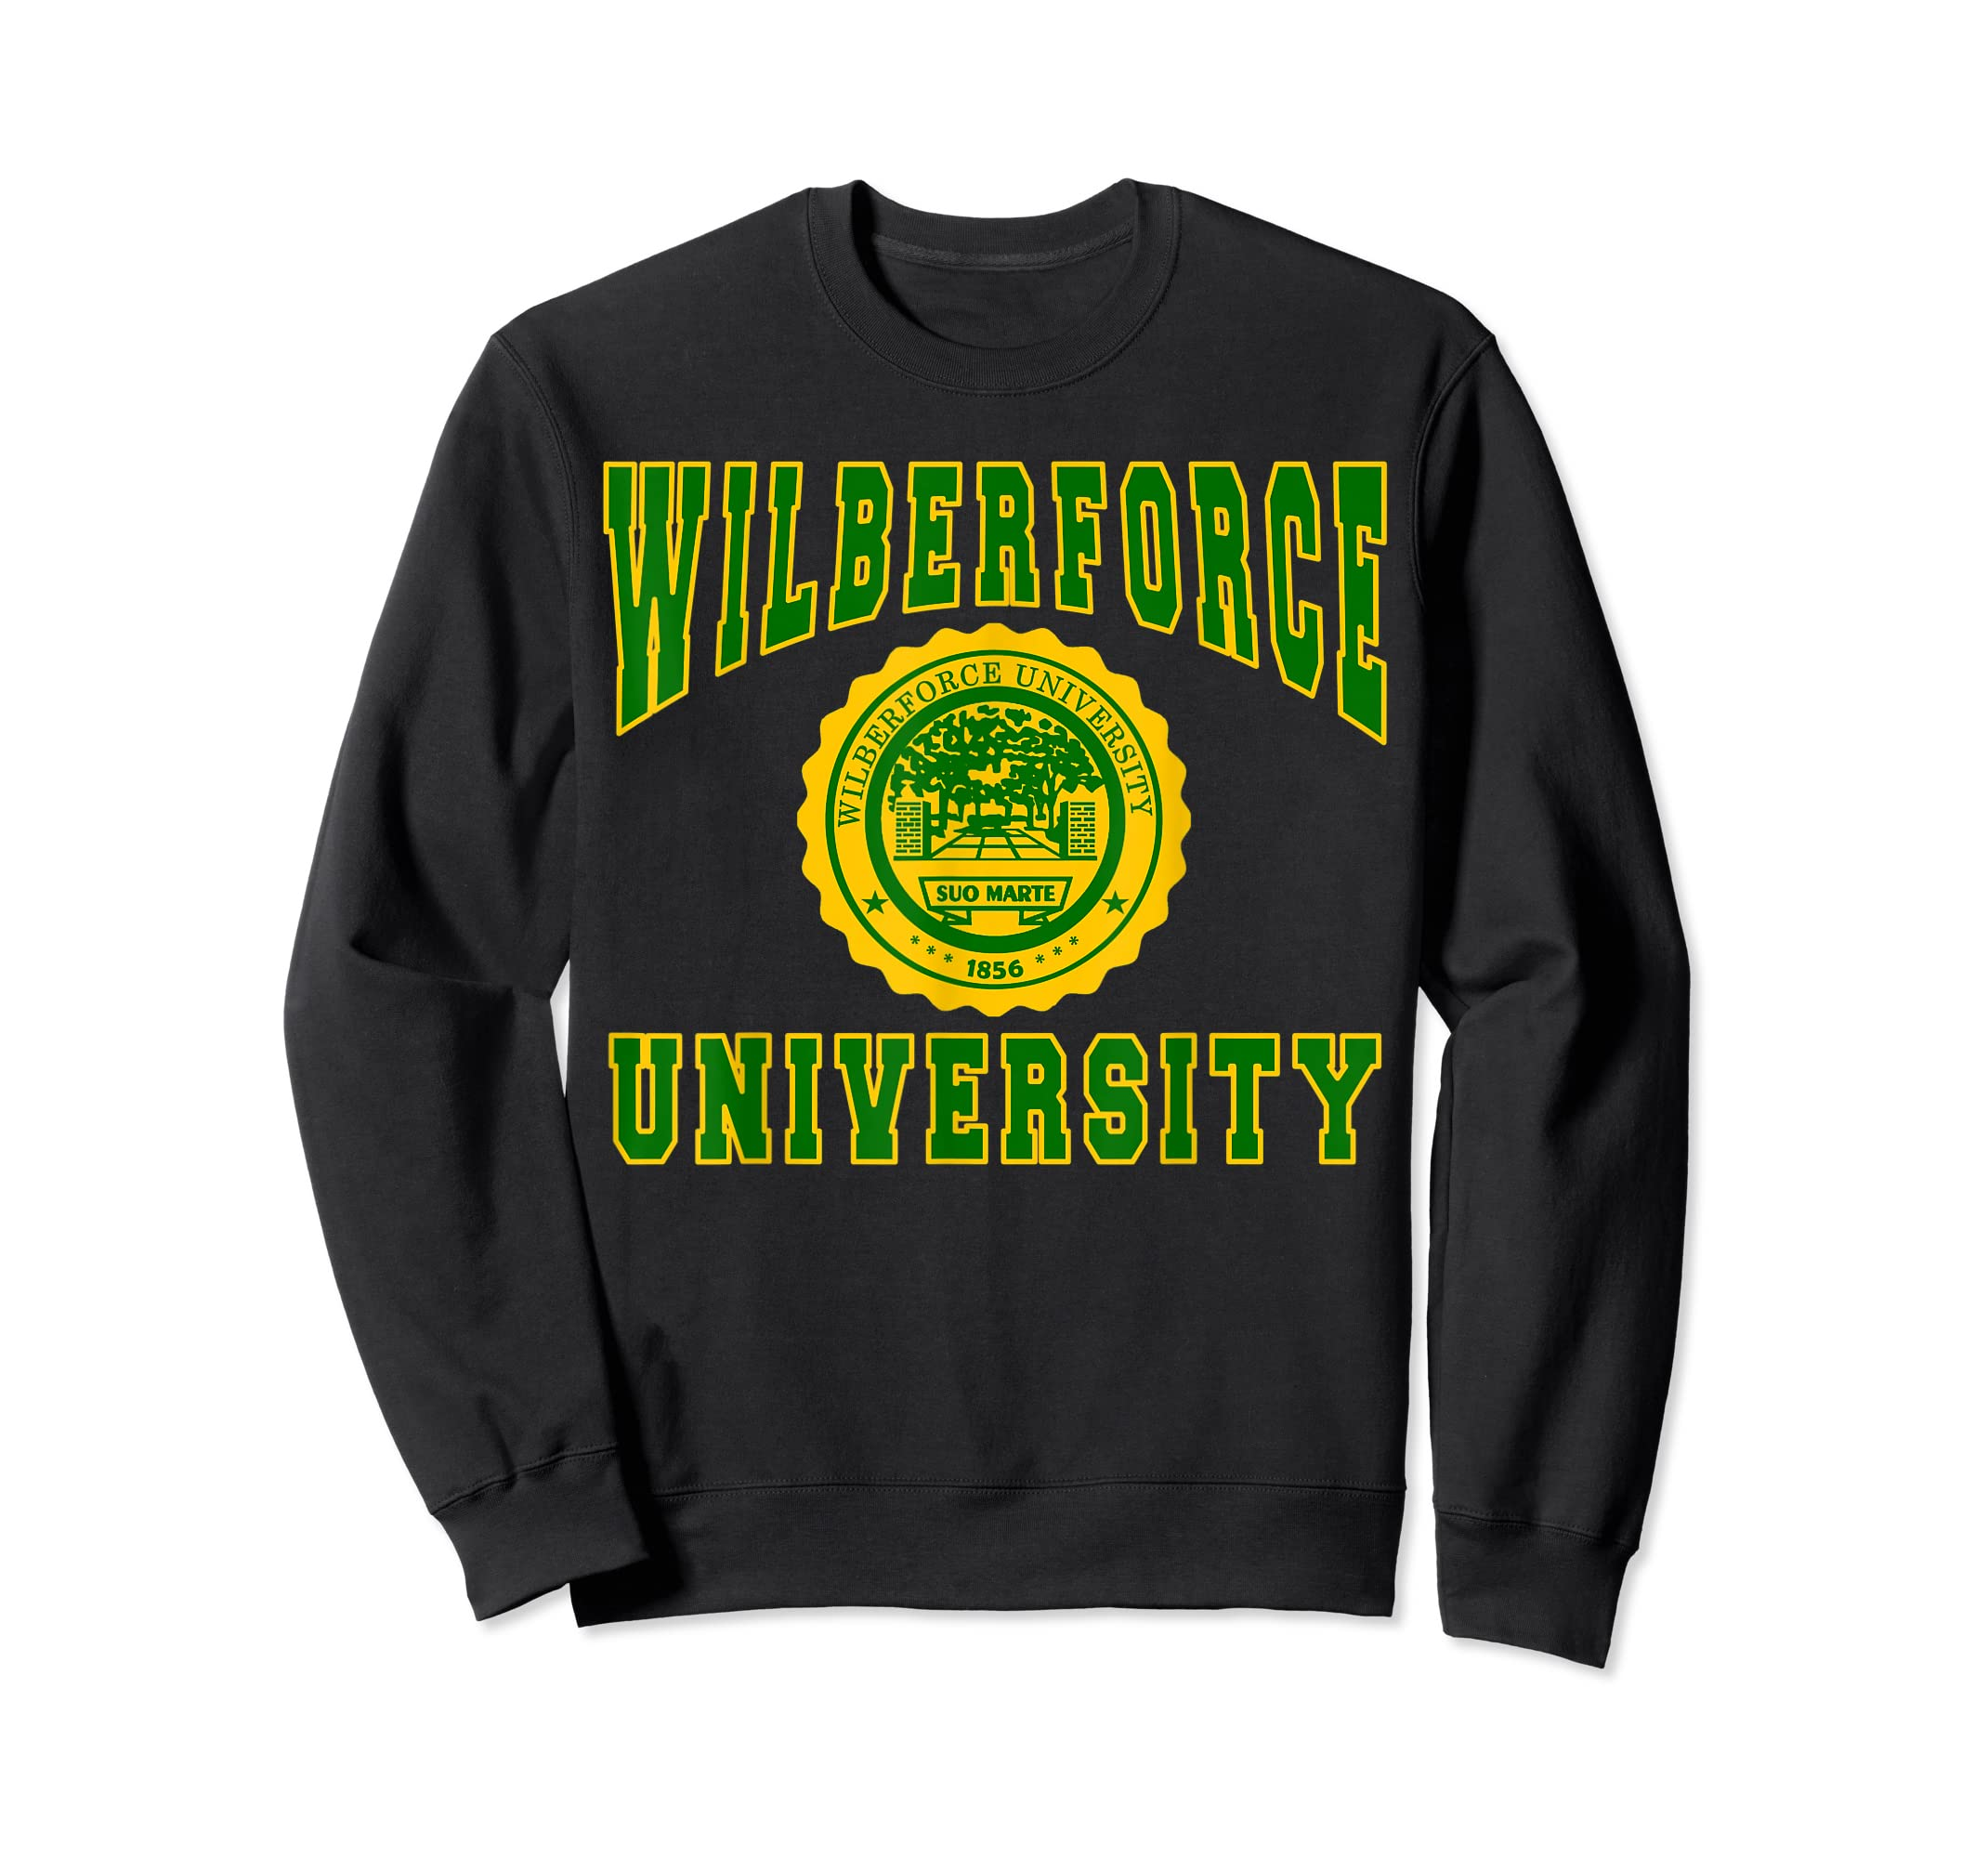 Wilberforce 1856 University Apparel - T shirt-Sweatshirt-Black